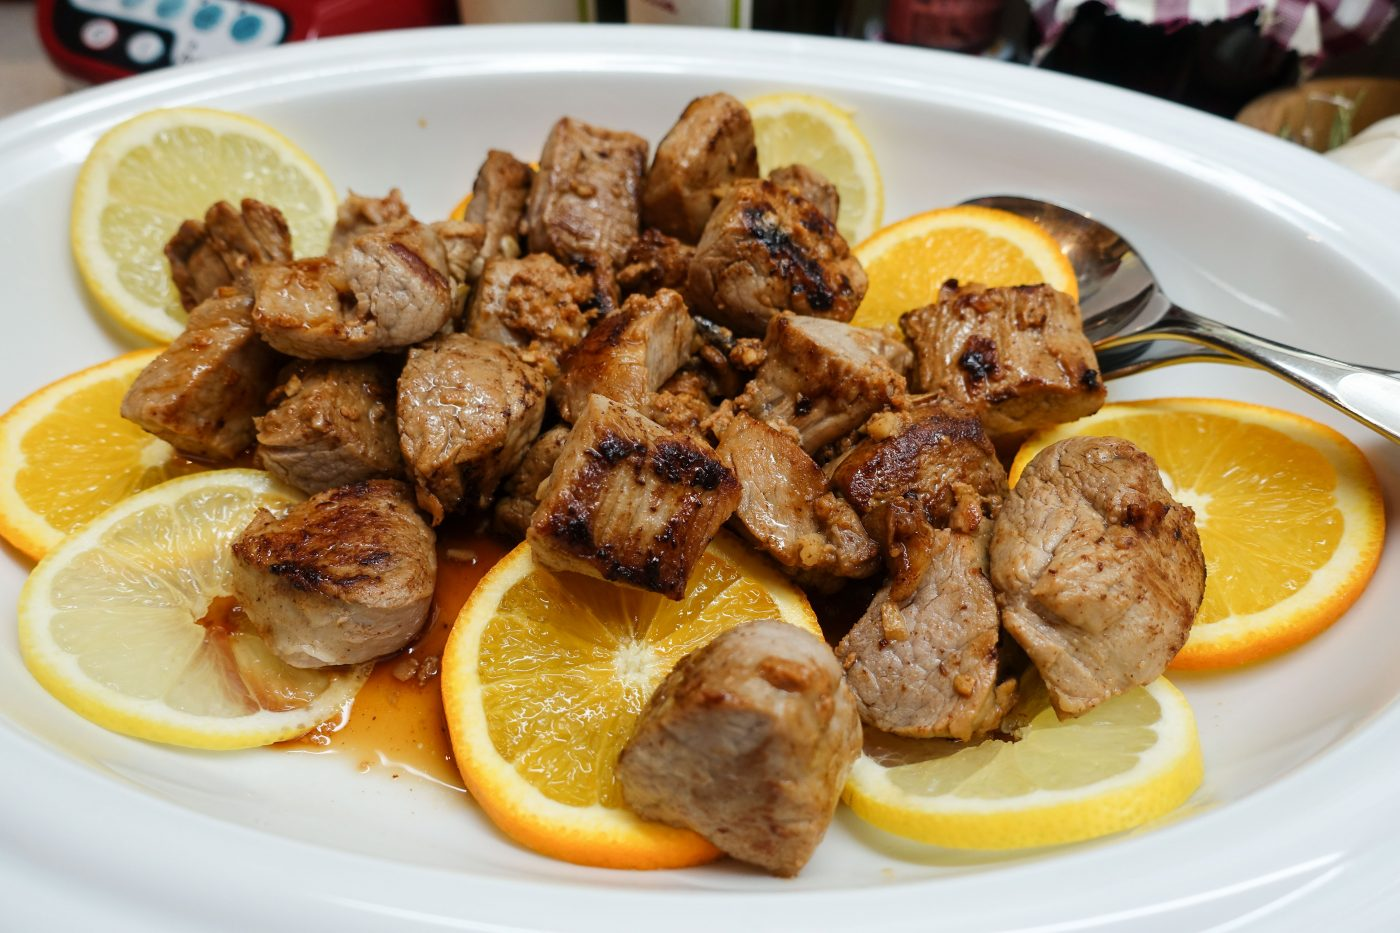 Carne de vinha d'alho - marinated pork with wine-garlic sauce and slices of orange and lemon